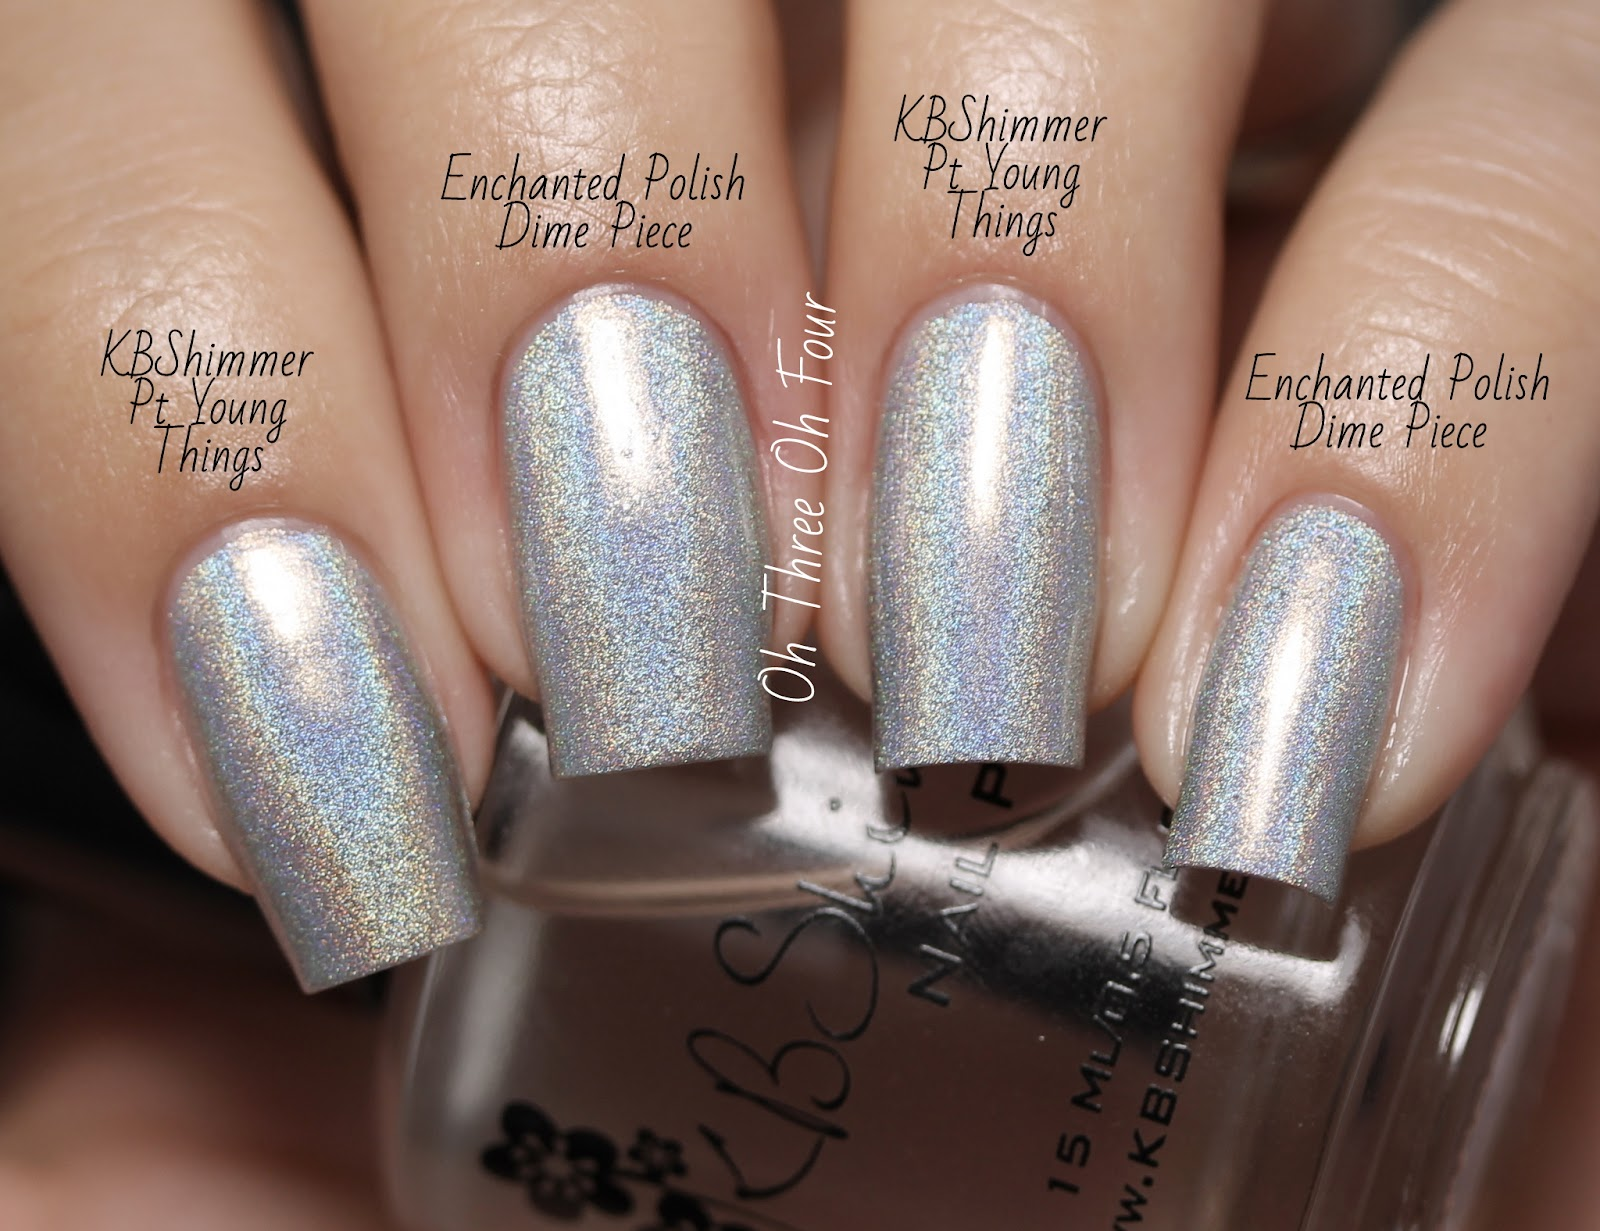 KBShimmer Pt Young Things vs Enchanted Polish Dime Piece